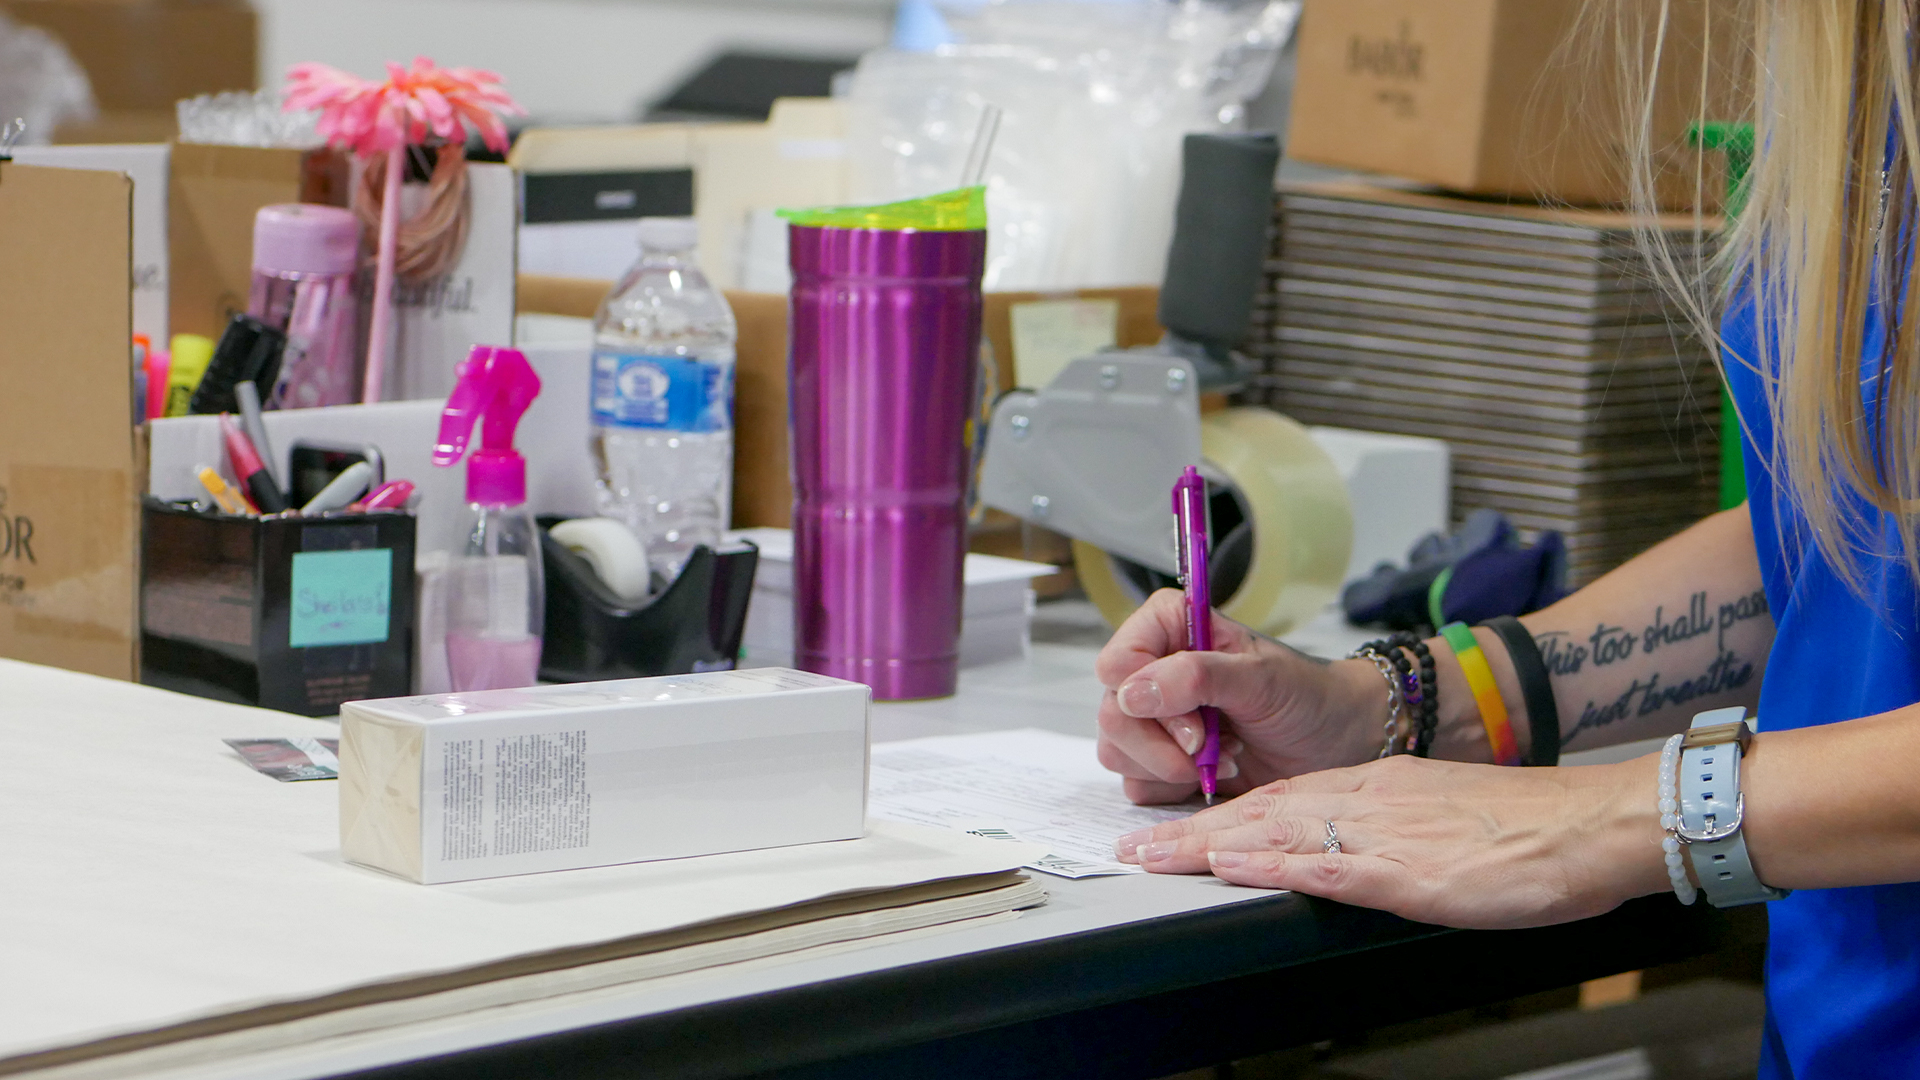 WDSrx Warehouse Technician writes a handwritten note that will be put in the customer's package.